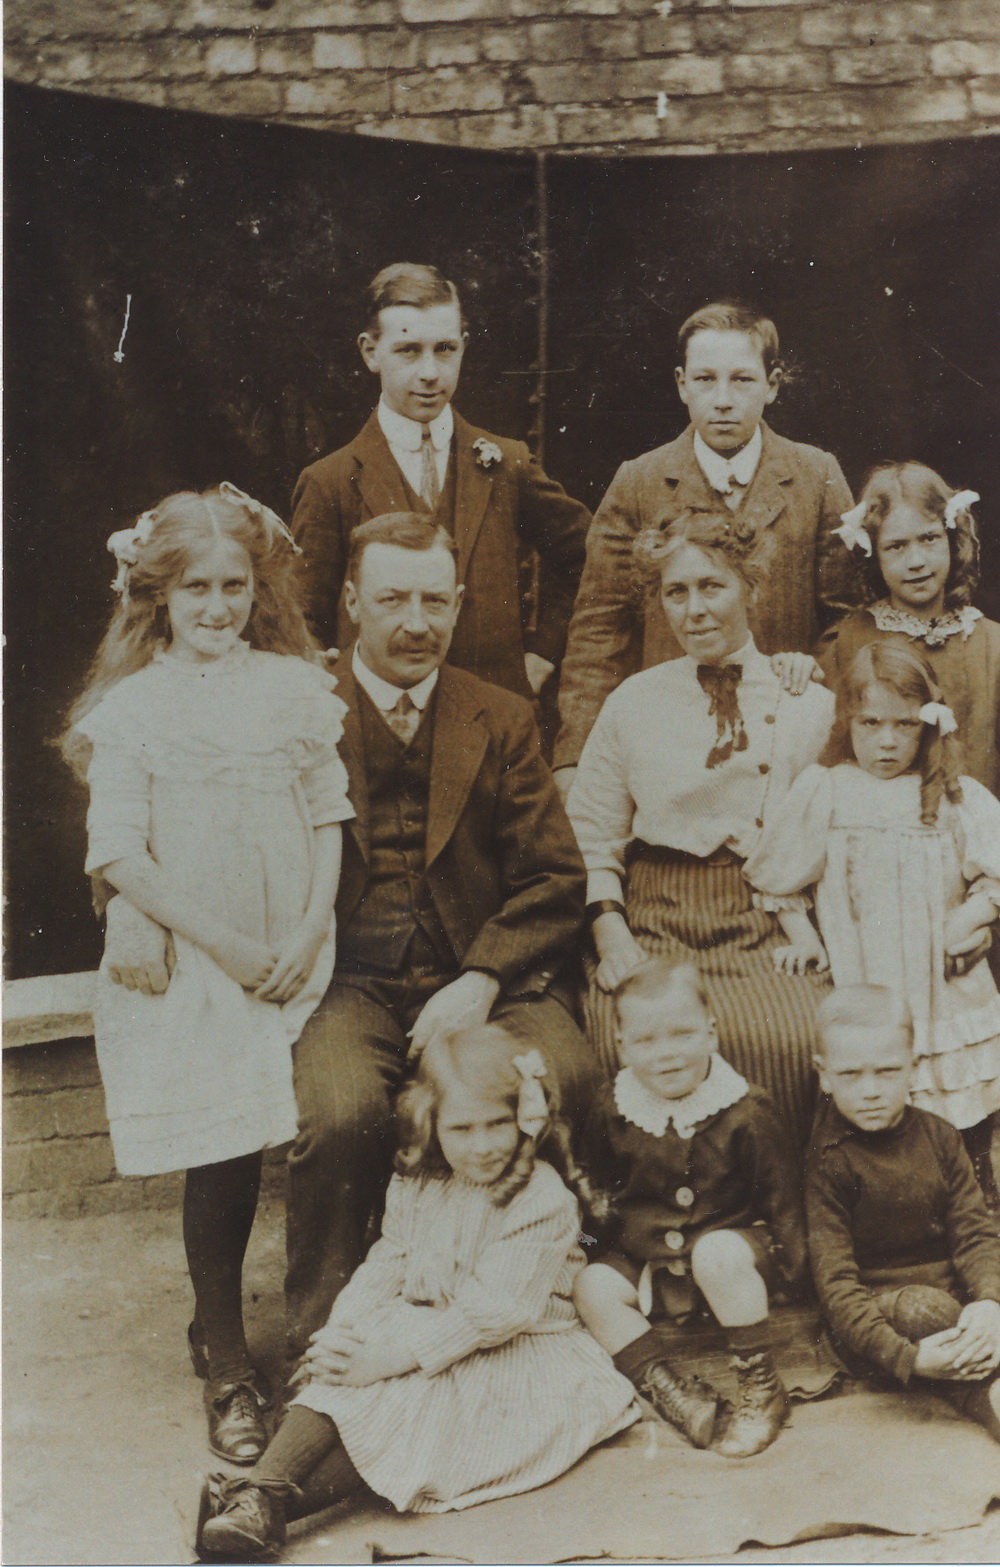 Pye Family photograph ca 1912. Standing (from left): Harry, William; Middle row (from left): Gertrude, Thomas, Mary, Anne, May; Seated at front (from left): Mary, Frank, Thomas